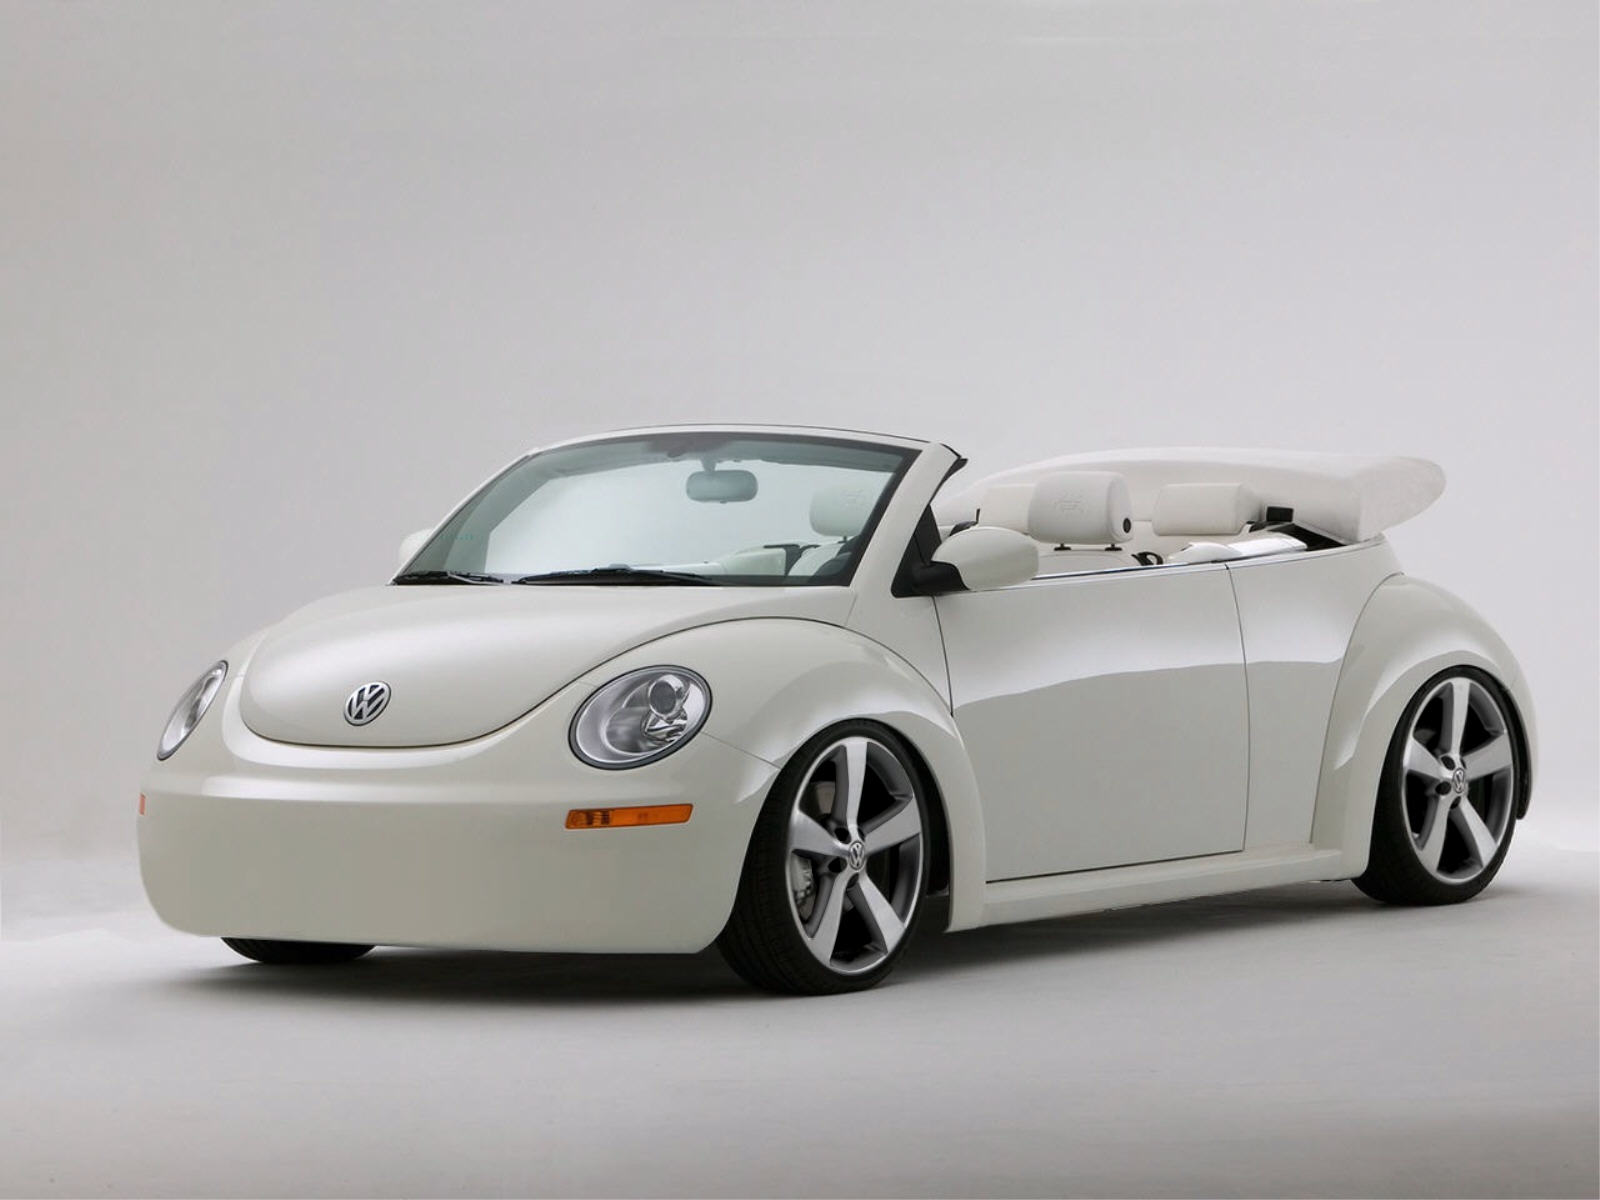 Fake Vw Beetle Cabrio Pagenstecher De Deine Automeile